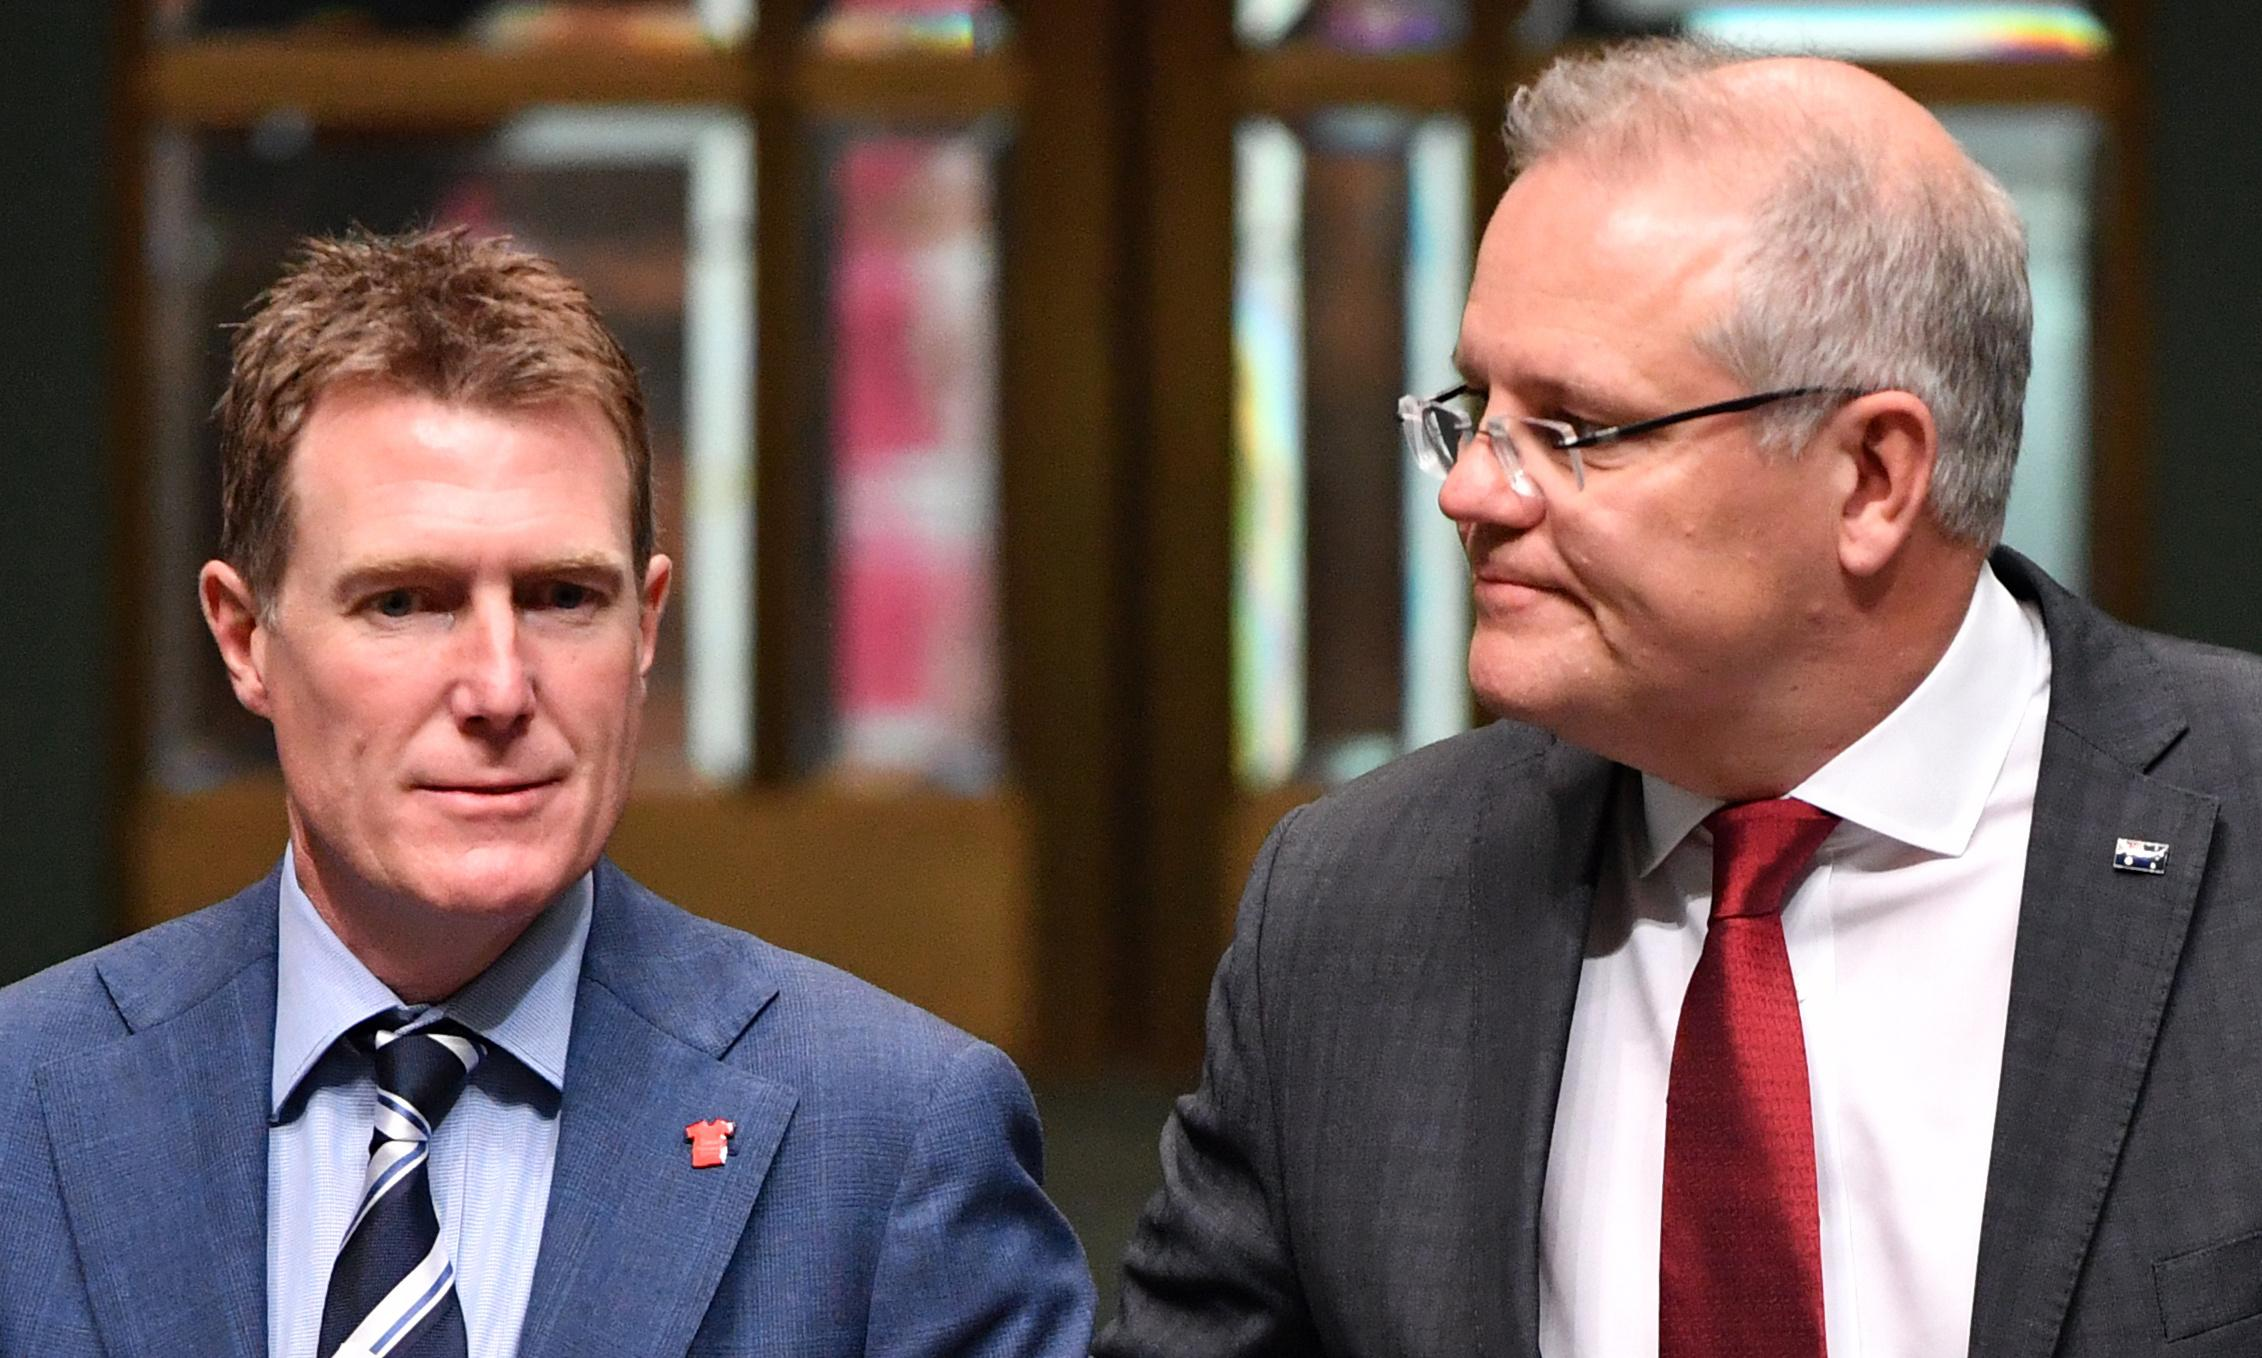 Religious discrimination bill: what will Australians be allowed to say and do if it passes?